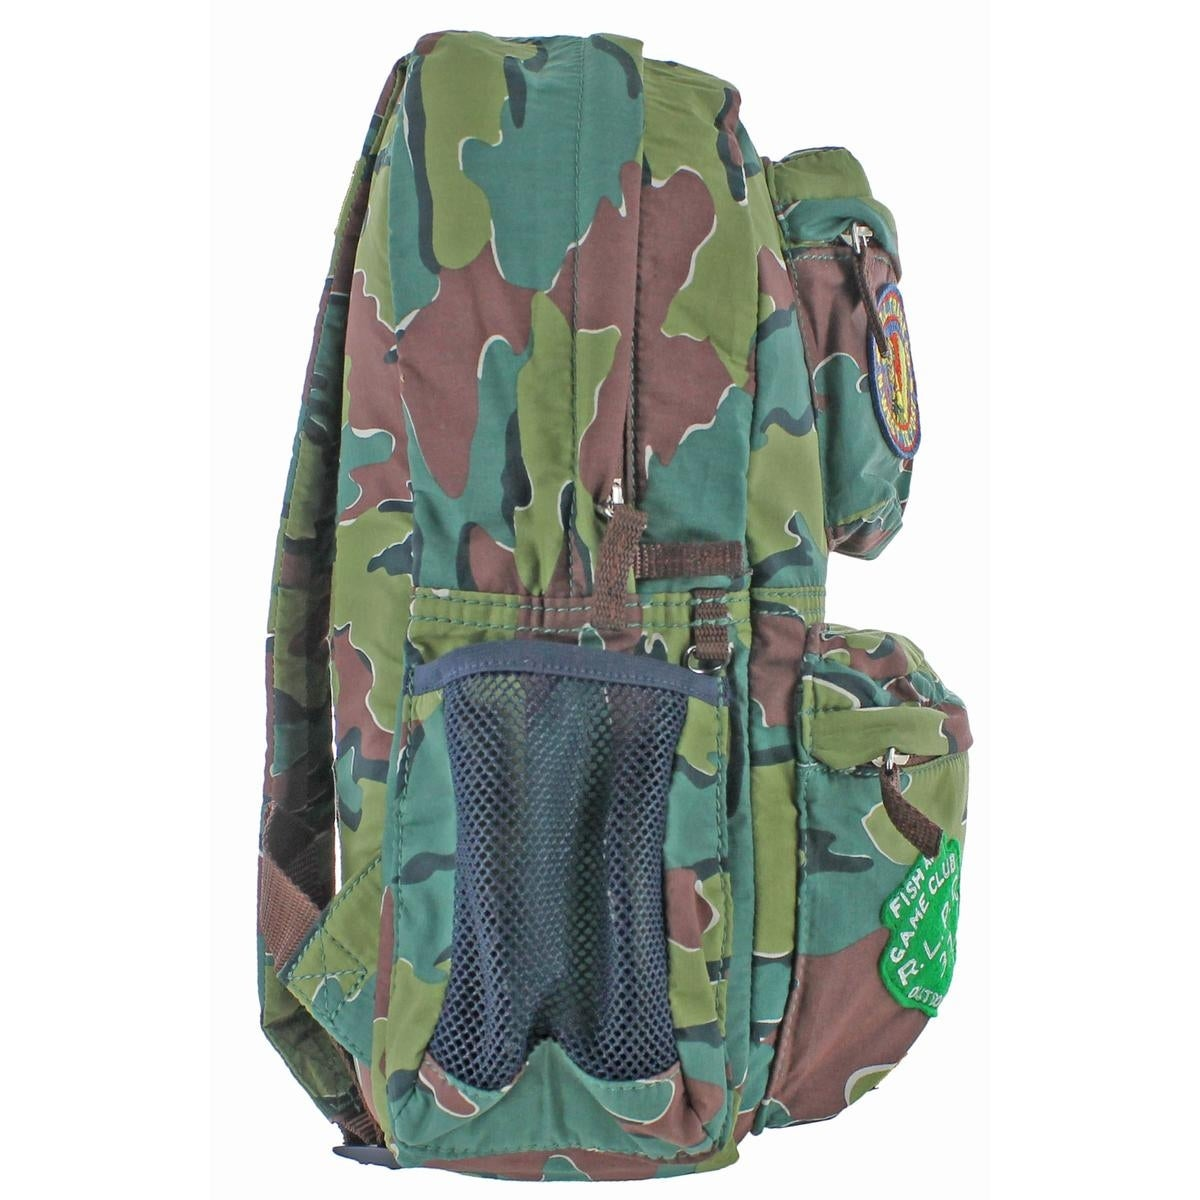 e3bf1e4f65 Shop Polo Ralph Lauren Boys Kid s Backpack Kids Camo - Free Shipping Today  - Overstock - 21726405